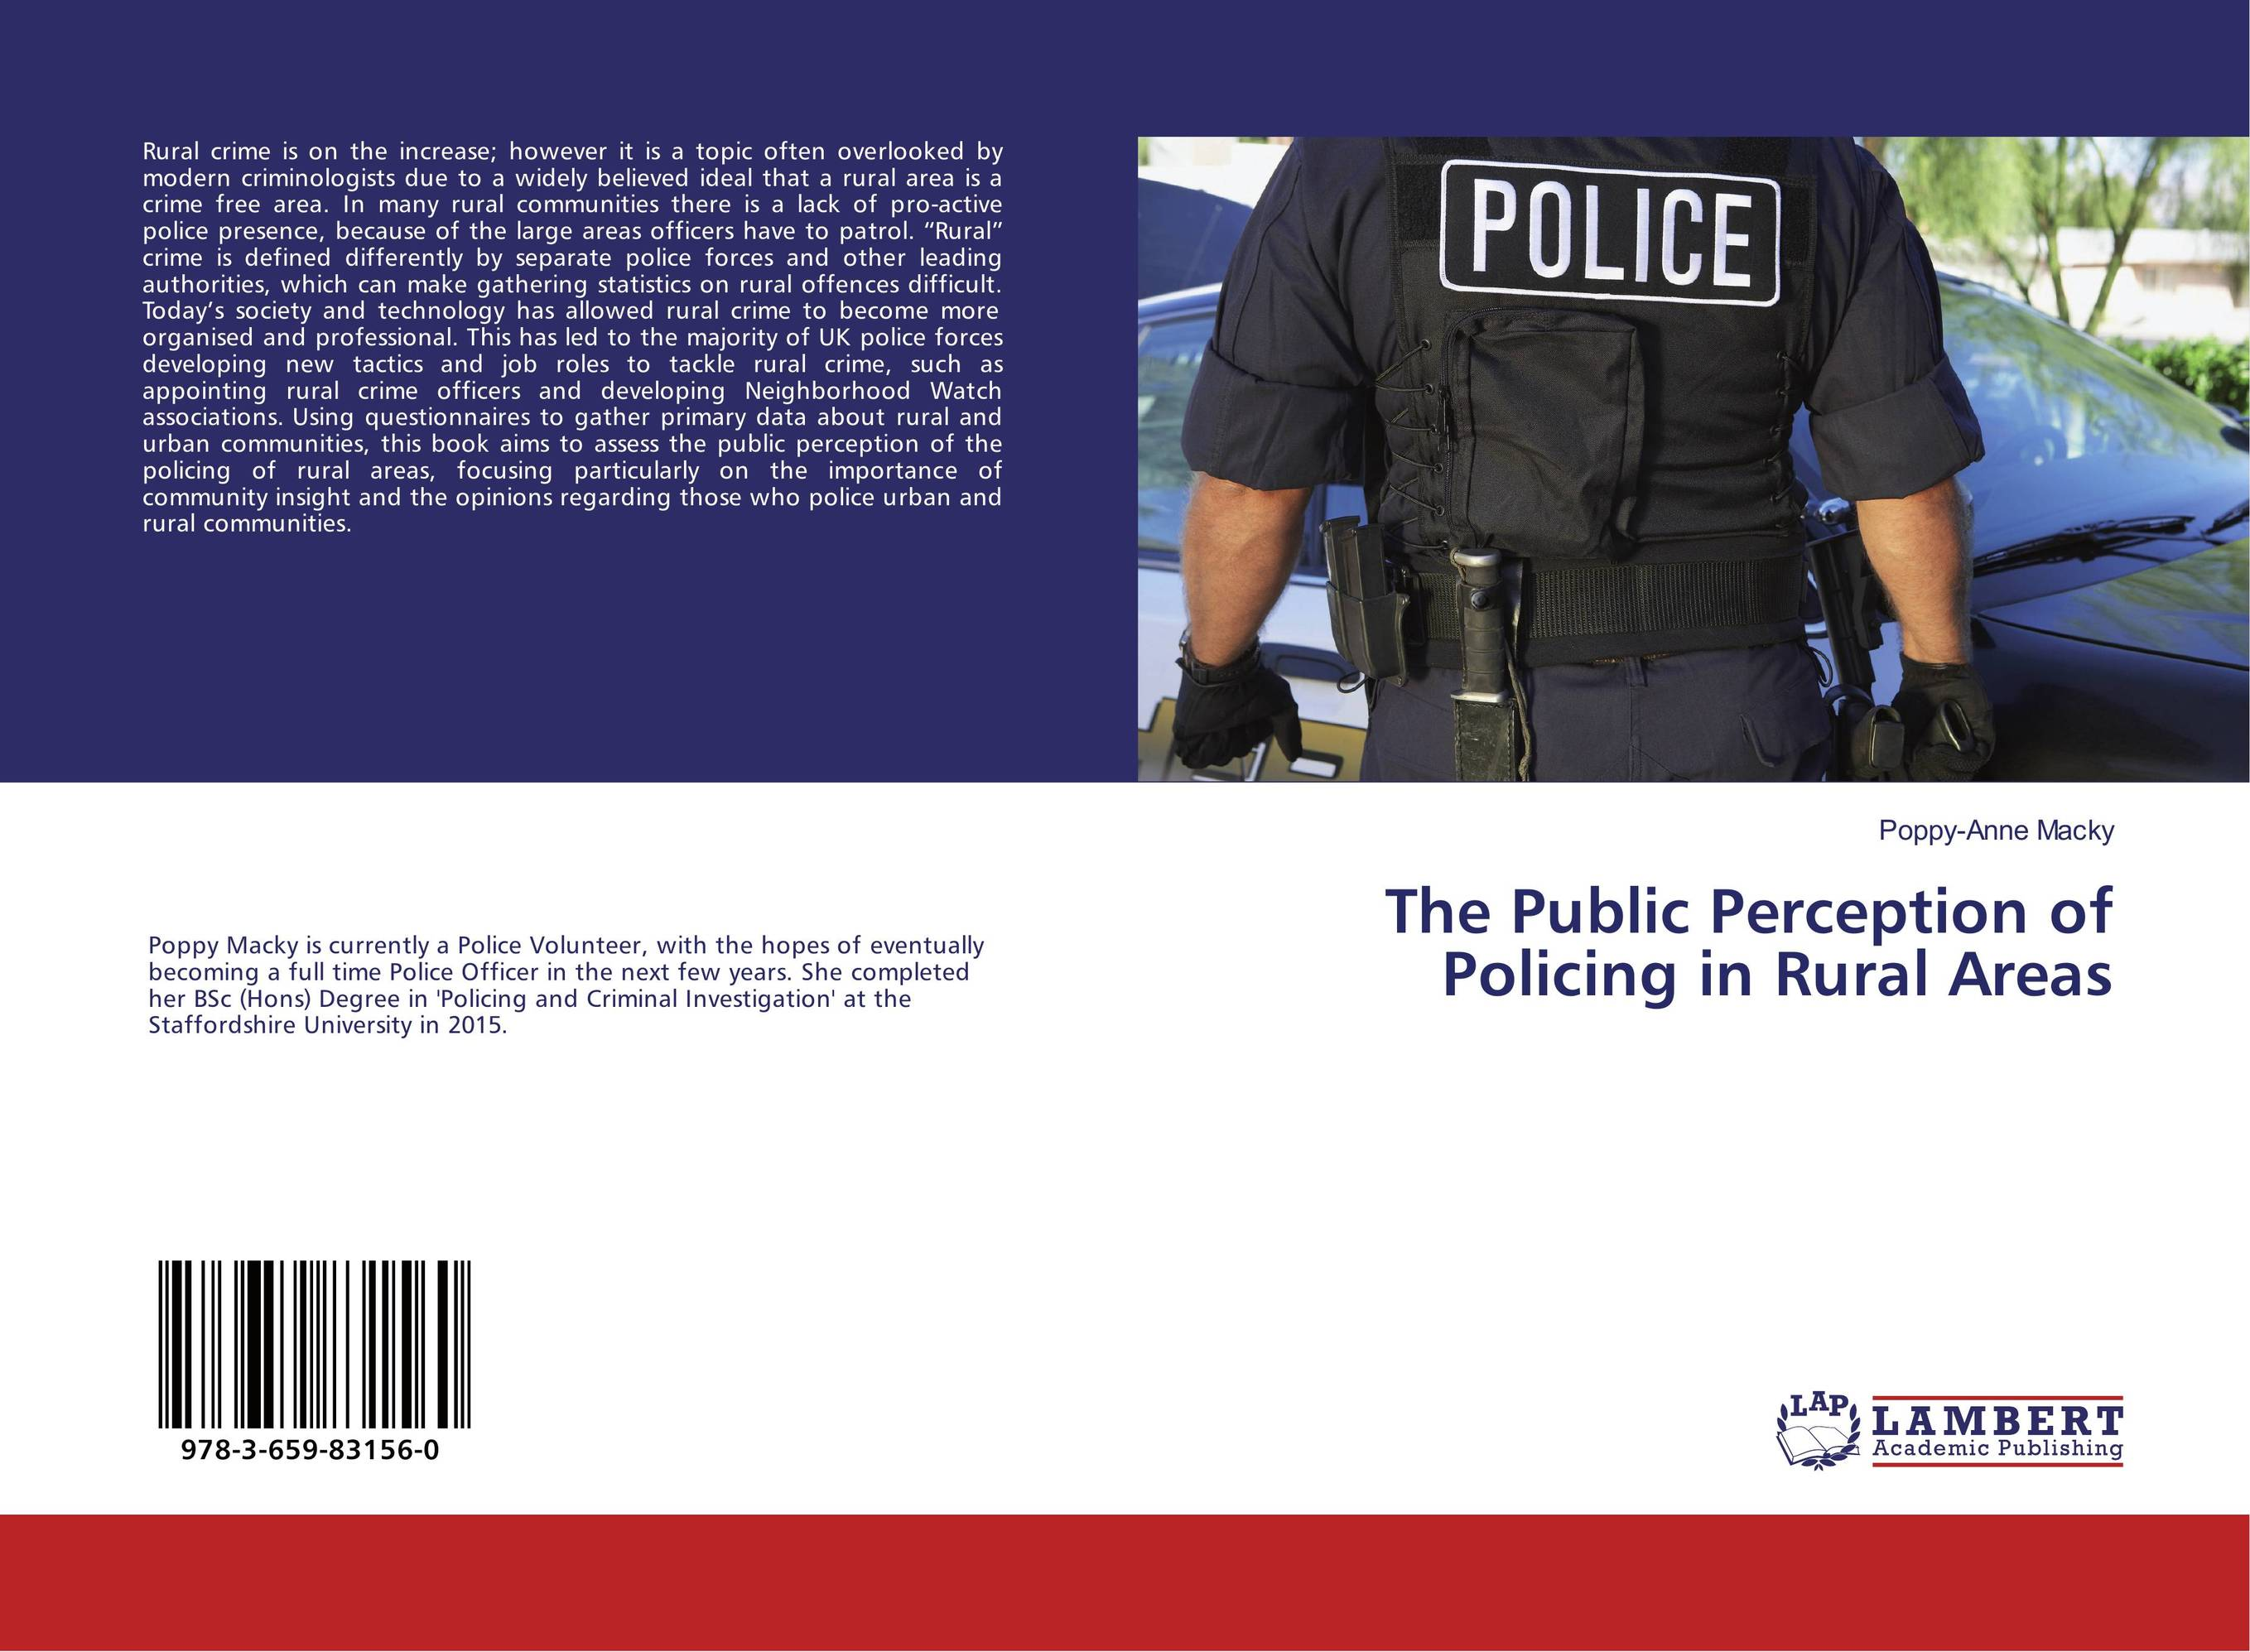 The Public Perception of Policing in Rural Areas public parks – the key to livable communities